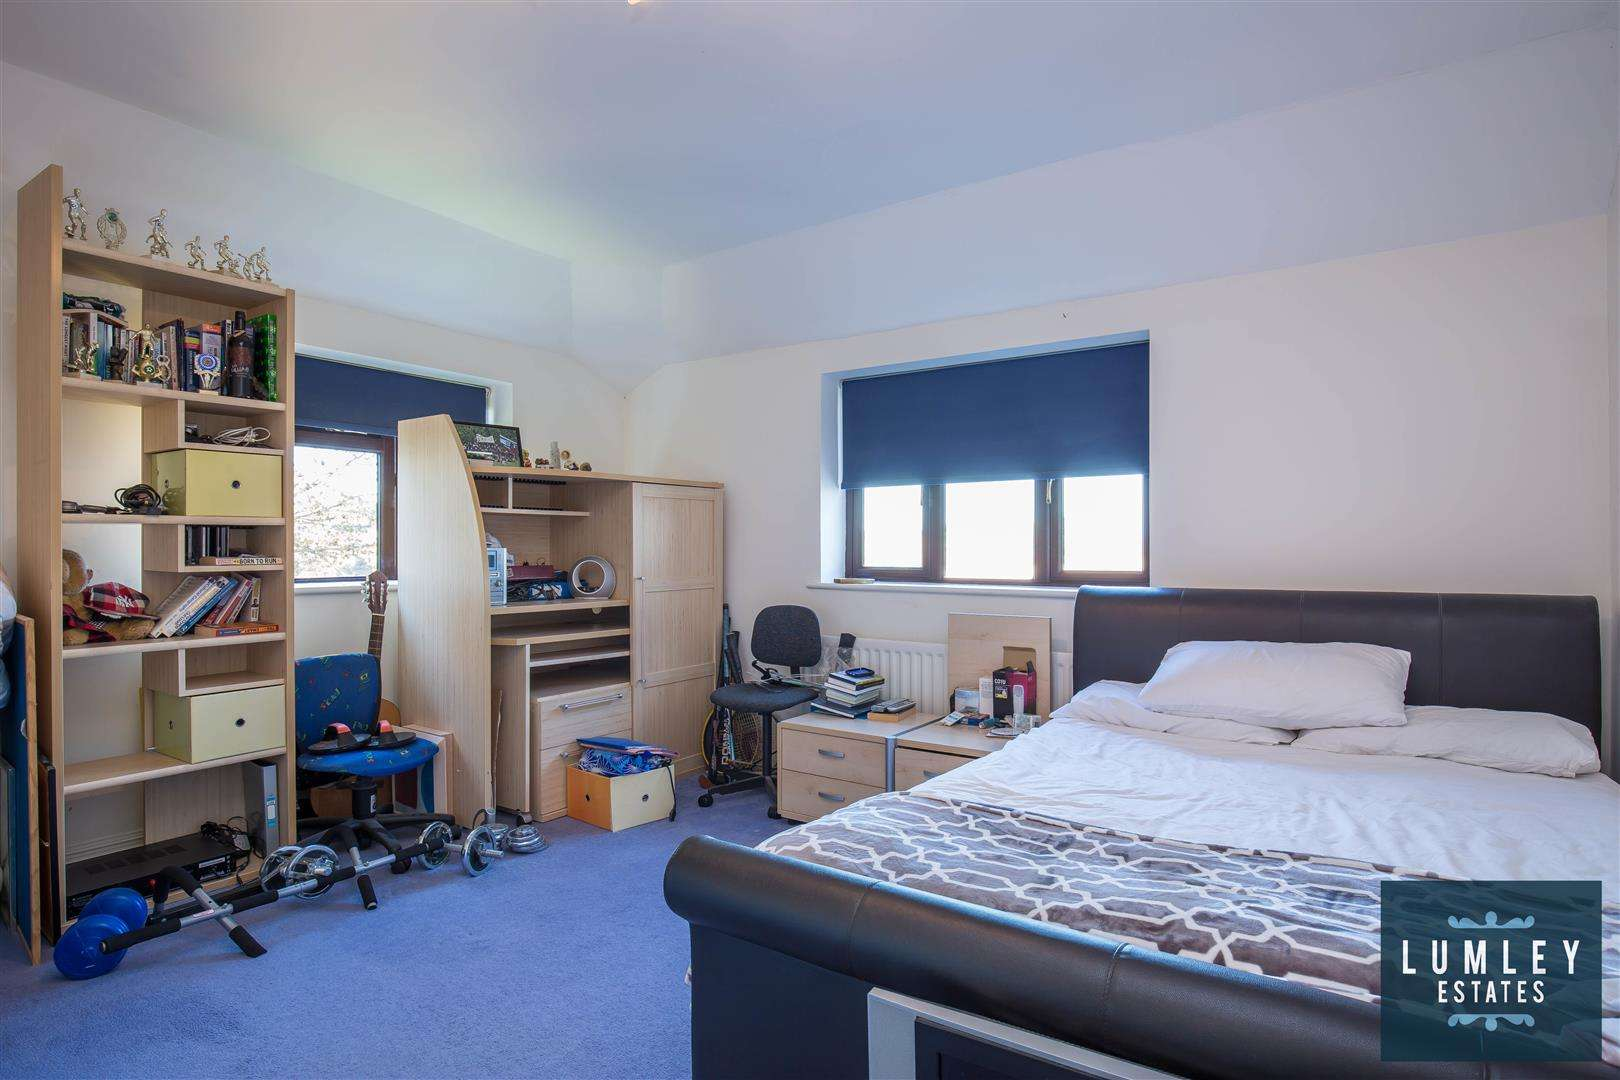 6 bed to rent - (Property Image 10)